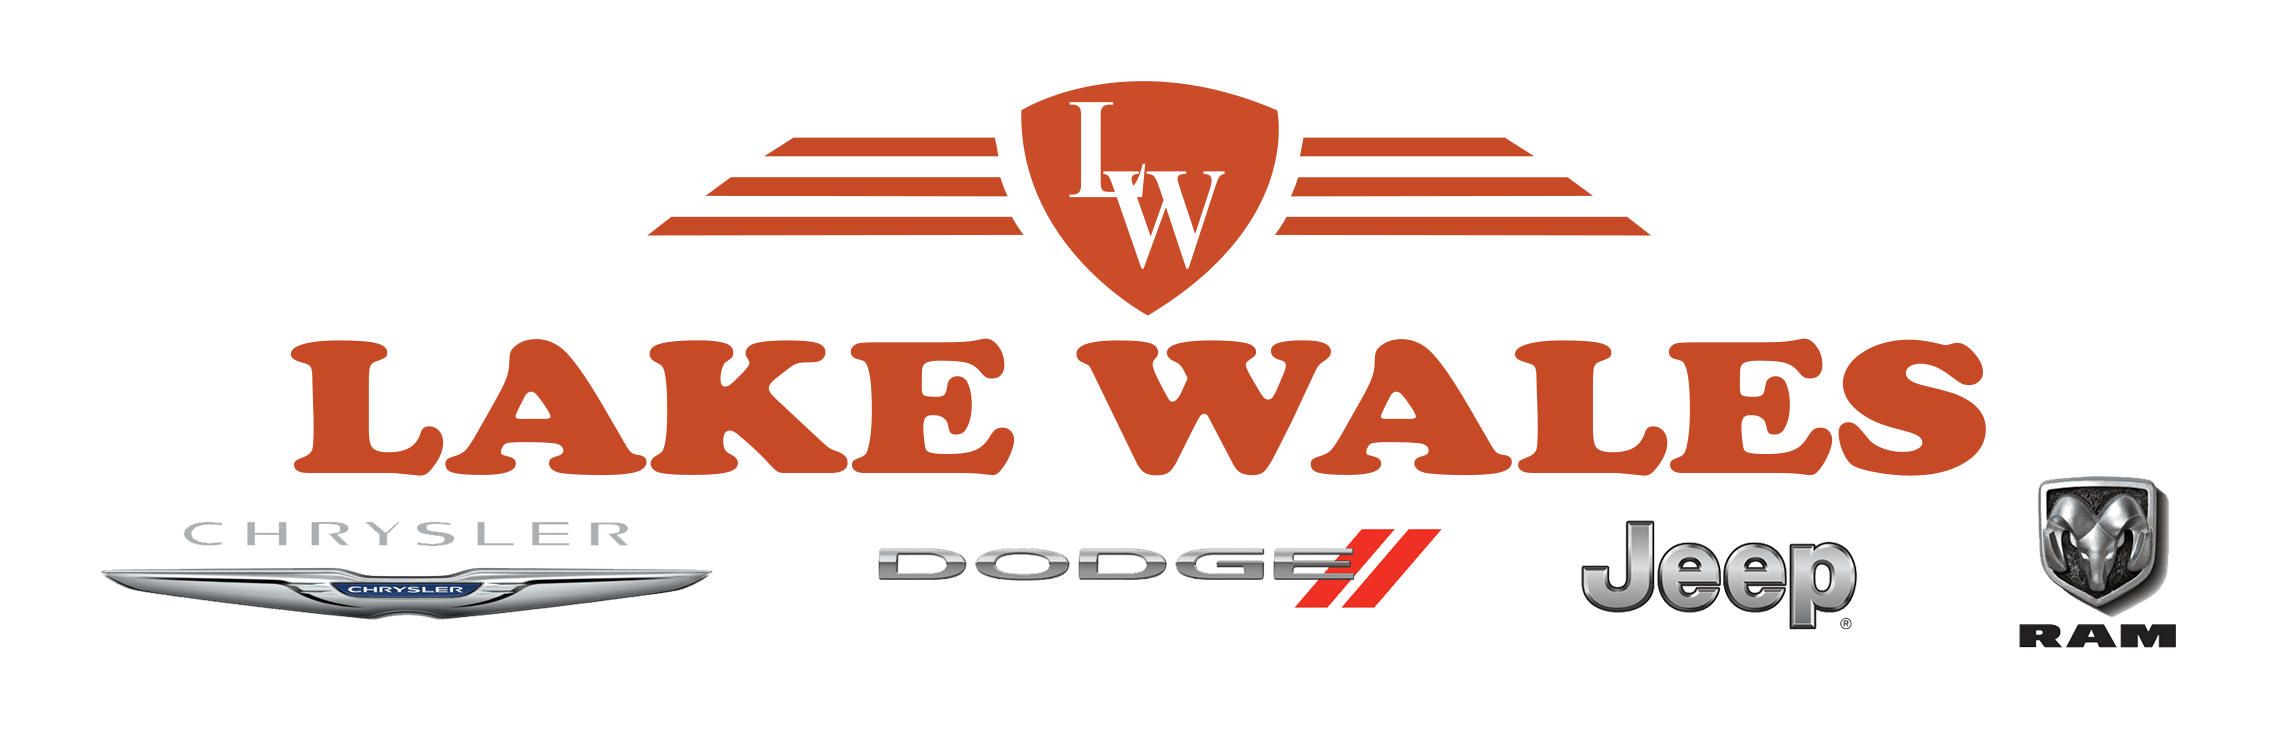 Lake Wales Chrysler Dodge Jeep Ram logo